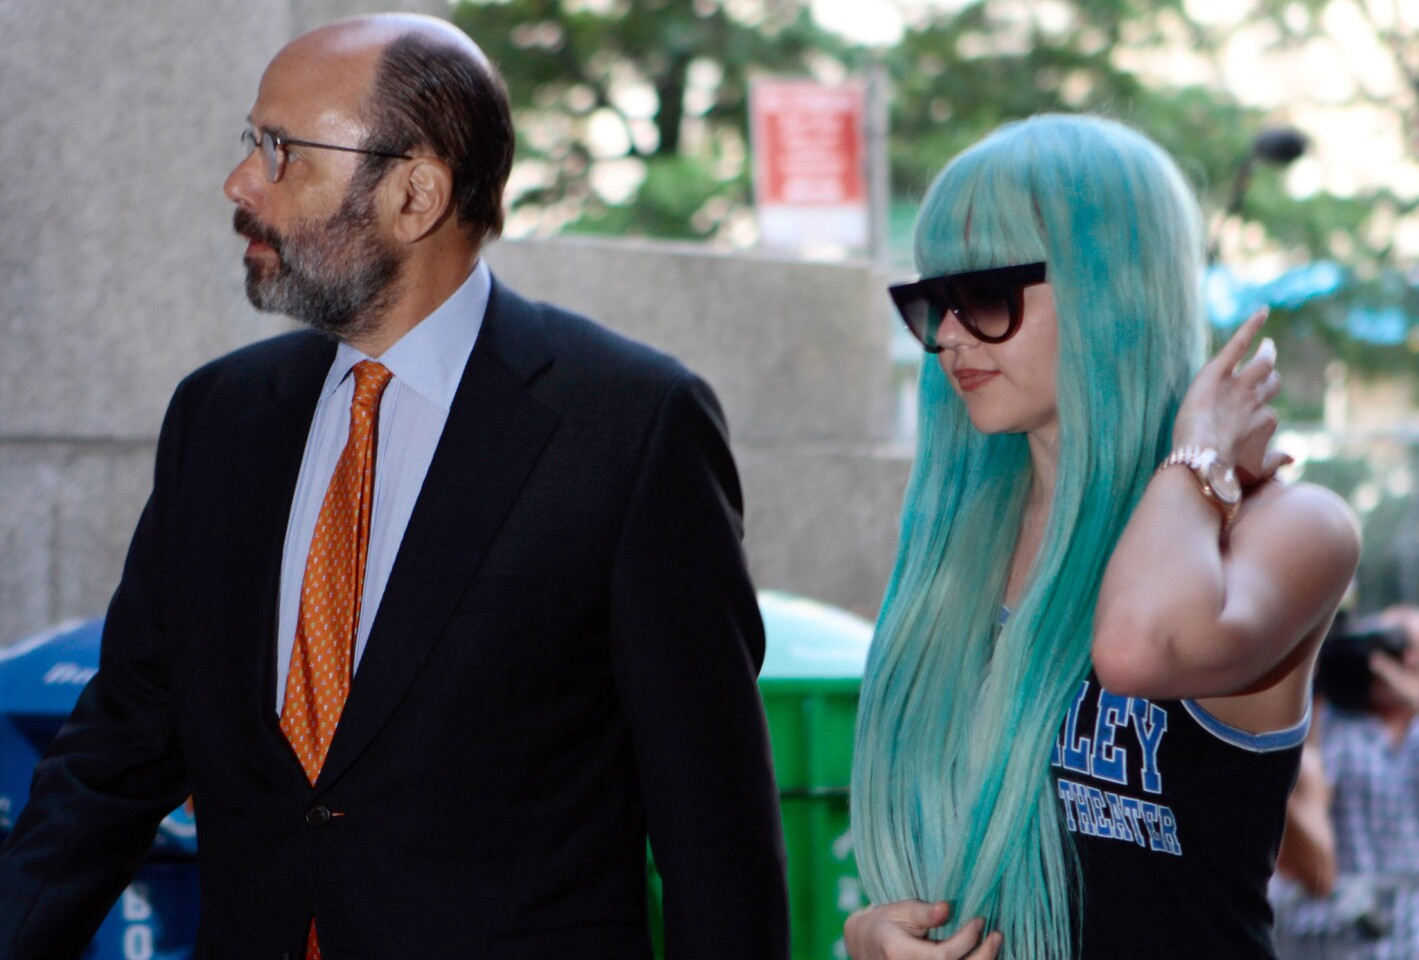 Amanda Bynes, accompanied by attorney Gerald Shargel, arrives for a court appearance in New York in 2013 on allegations that she chucked a marijuana bong out the window of her 36th-floor Manhattan apartment.